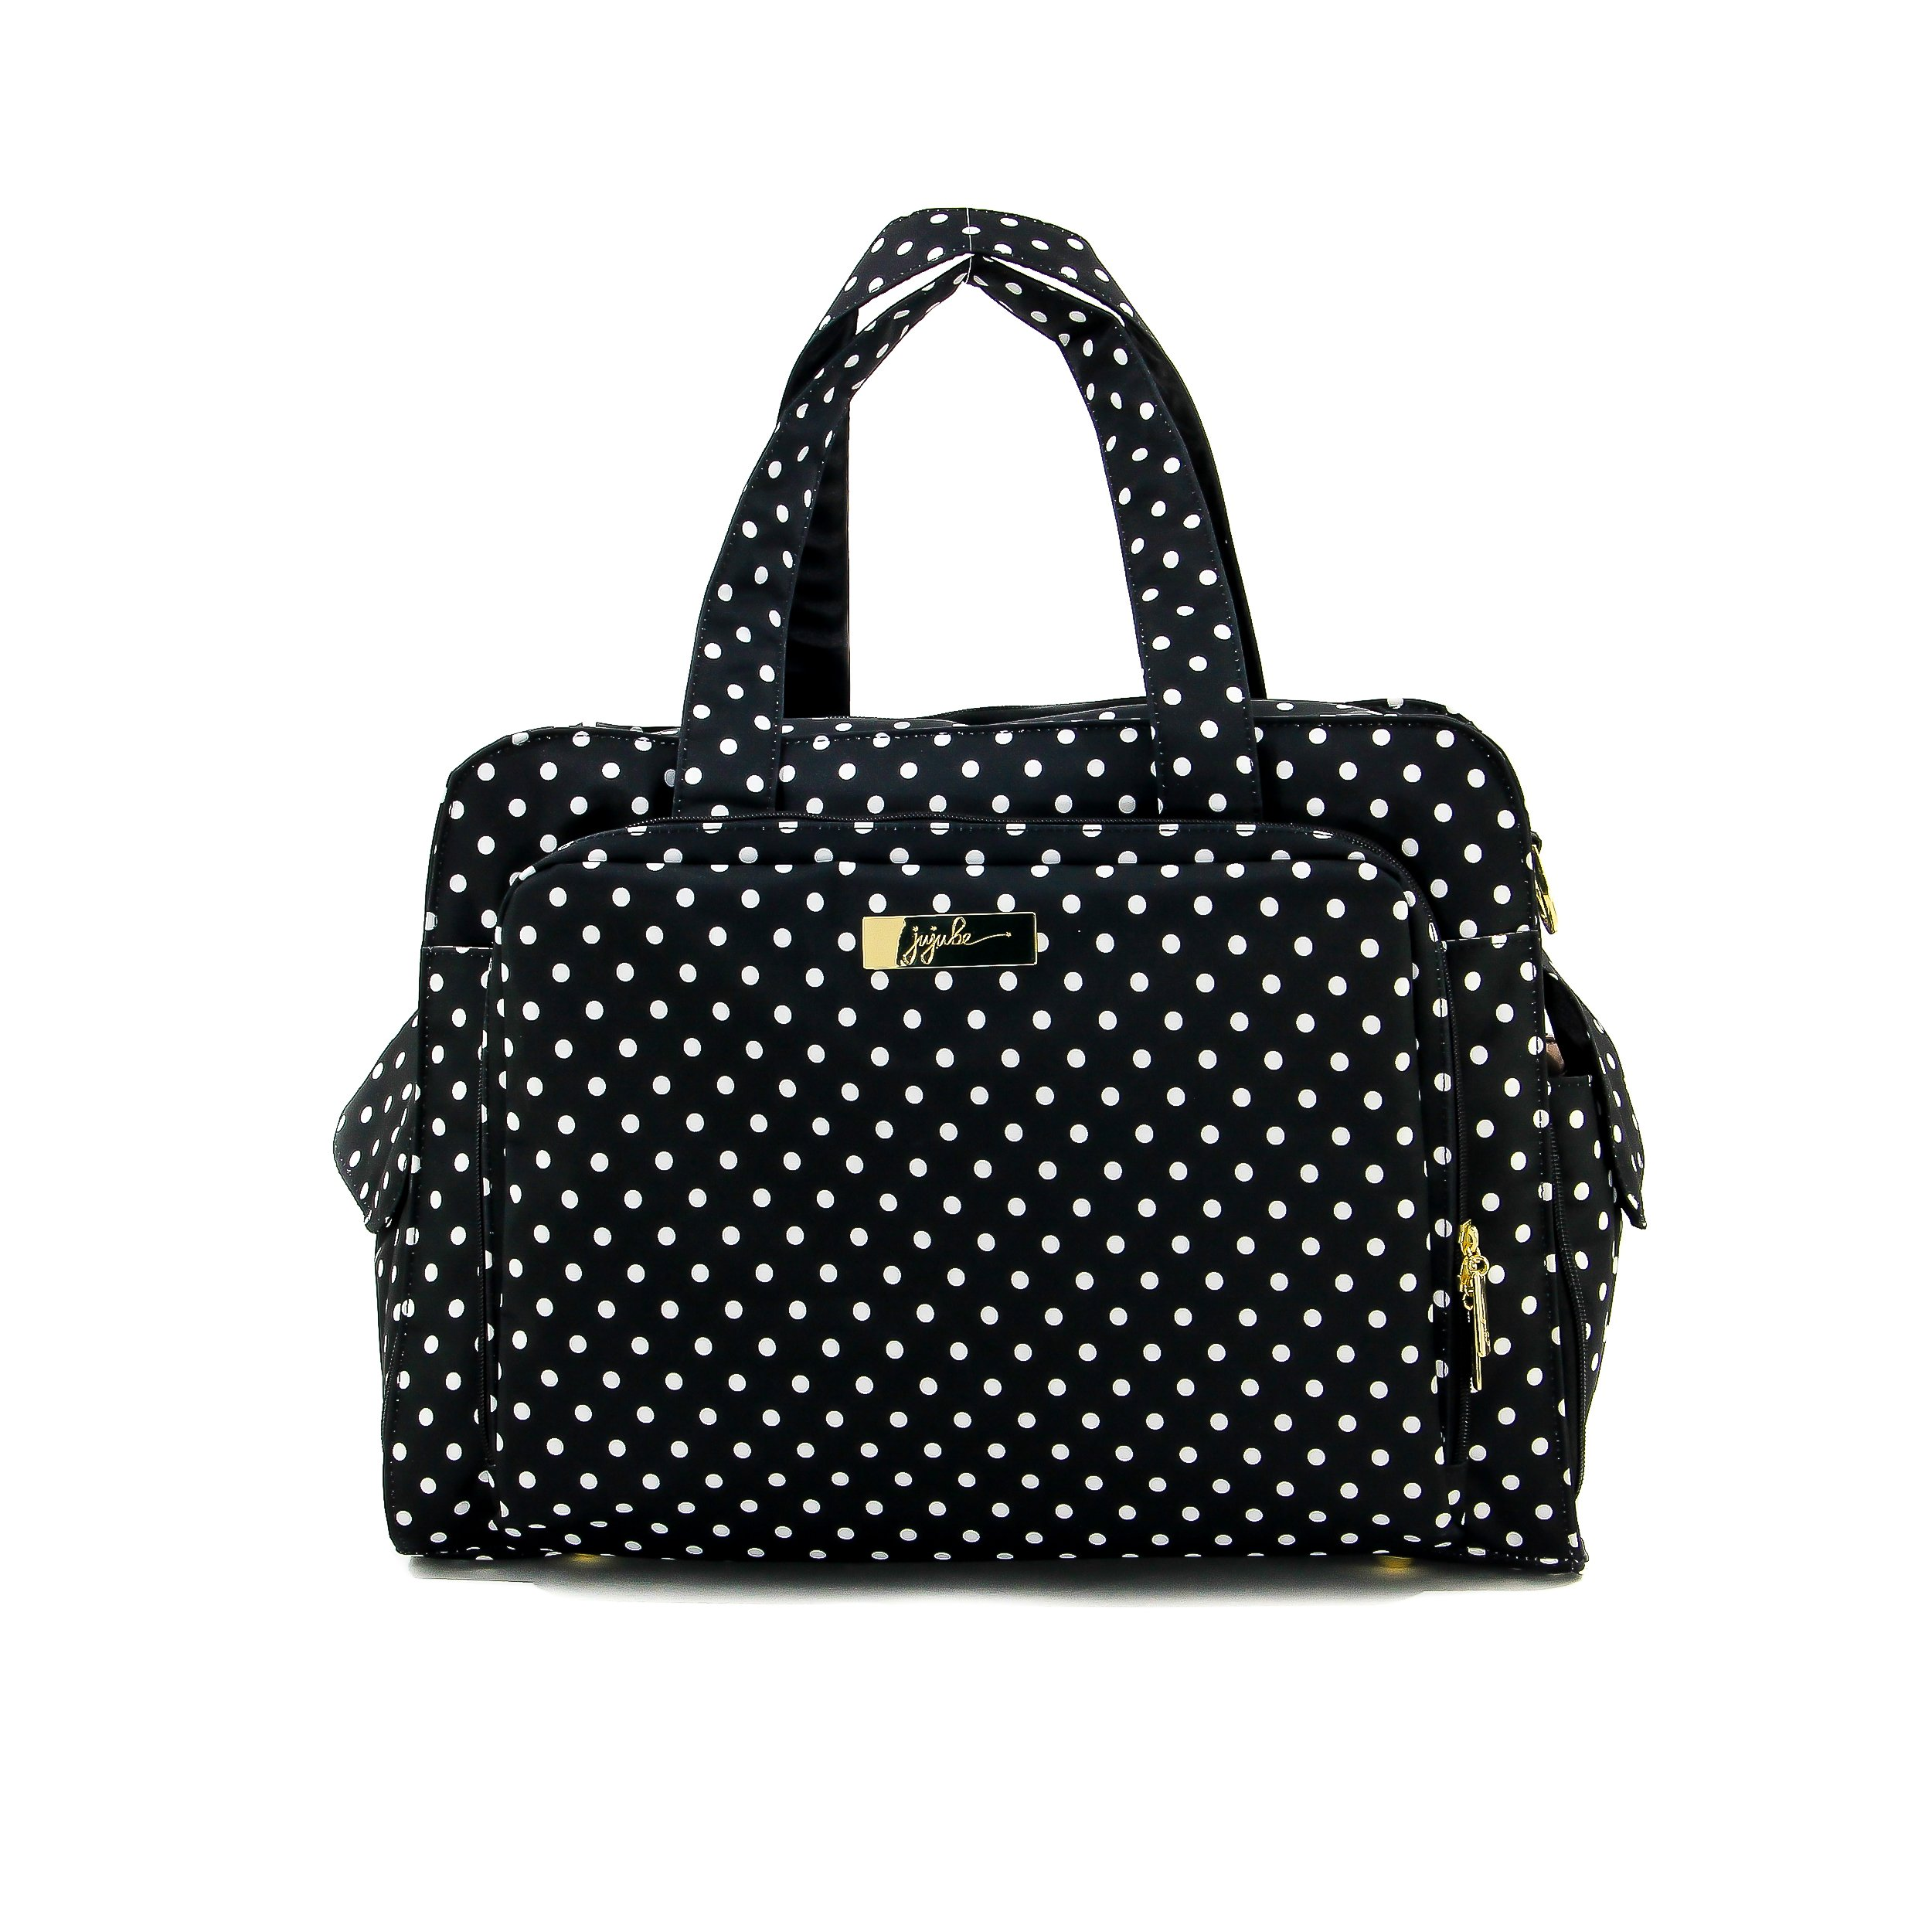 JuJuBe Be Prepared Travel Carry-on/Diaper Bag, Legacy Collection - The Duchess - Black with White Polka Dots